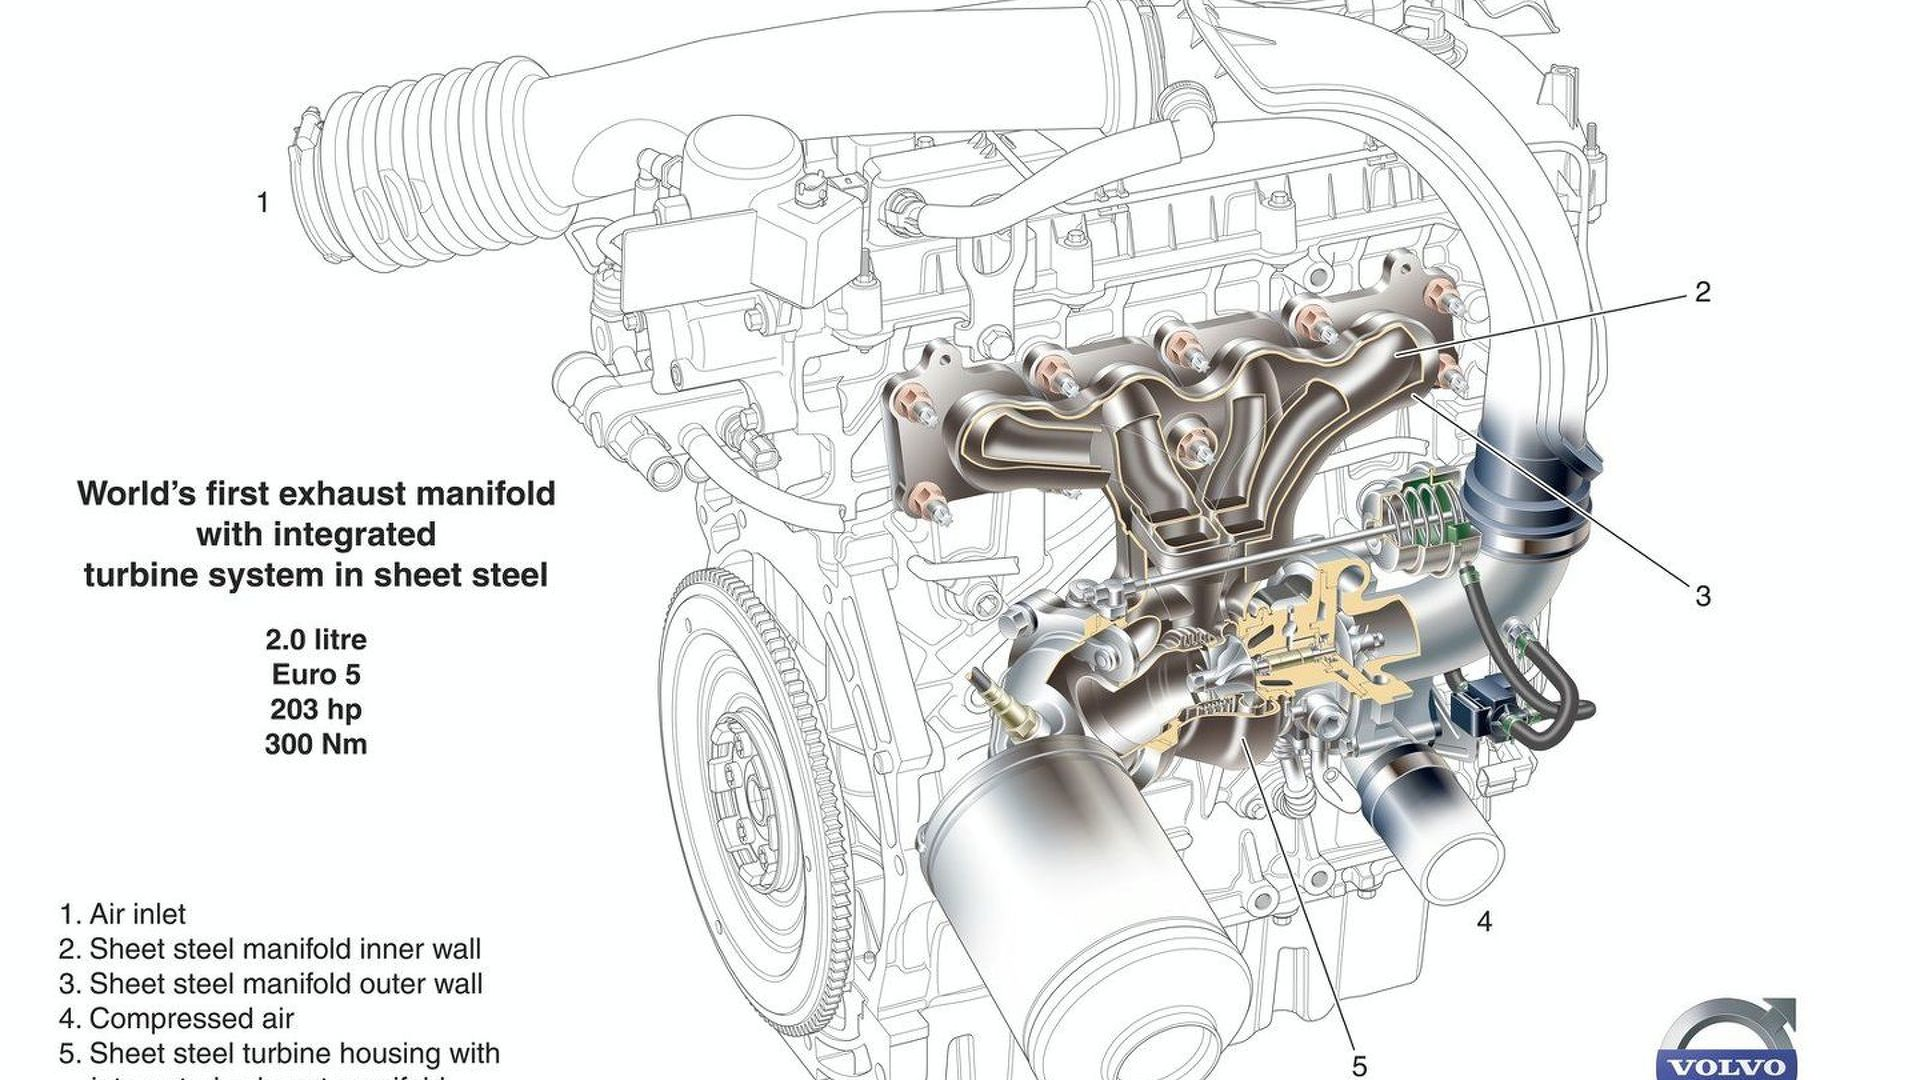 Volvo Announces New GTDi Engine with Unique Turbo System on